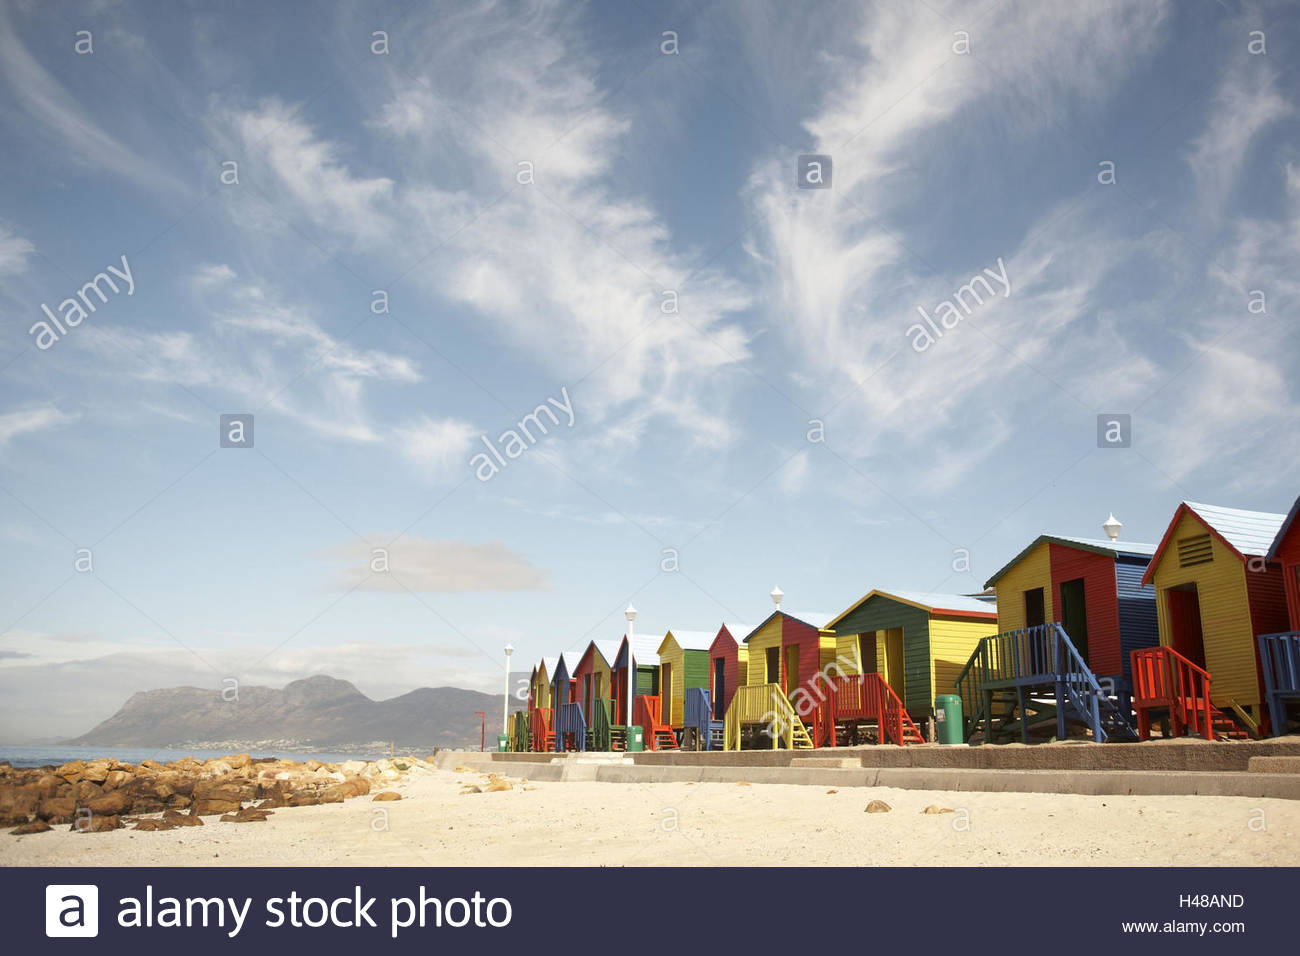 Africa, South Africa, Western Cape, False Bay, close Capetown and Muizenberg, St. James, coloured beach huts, sunny - Stock Image